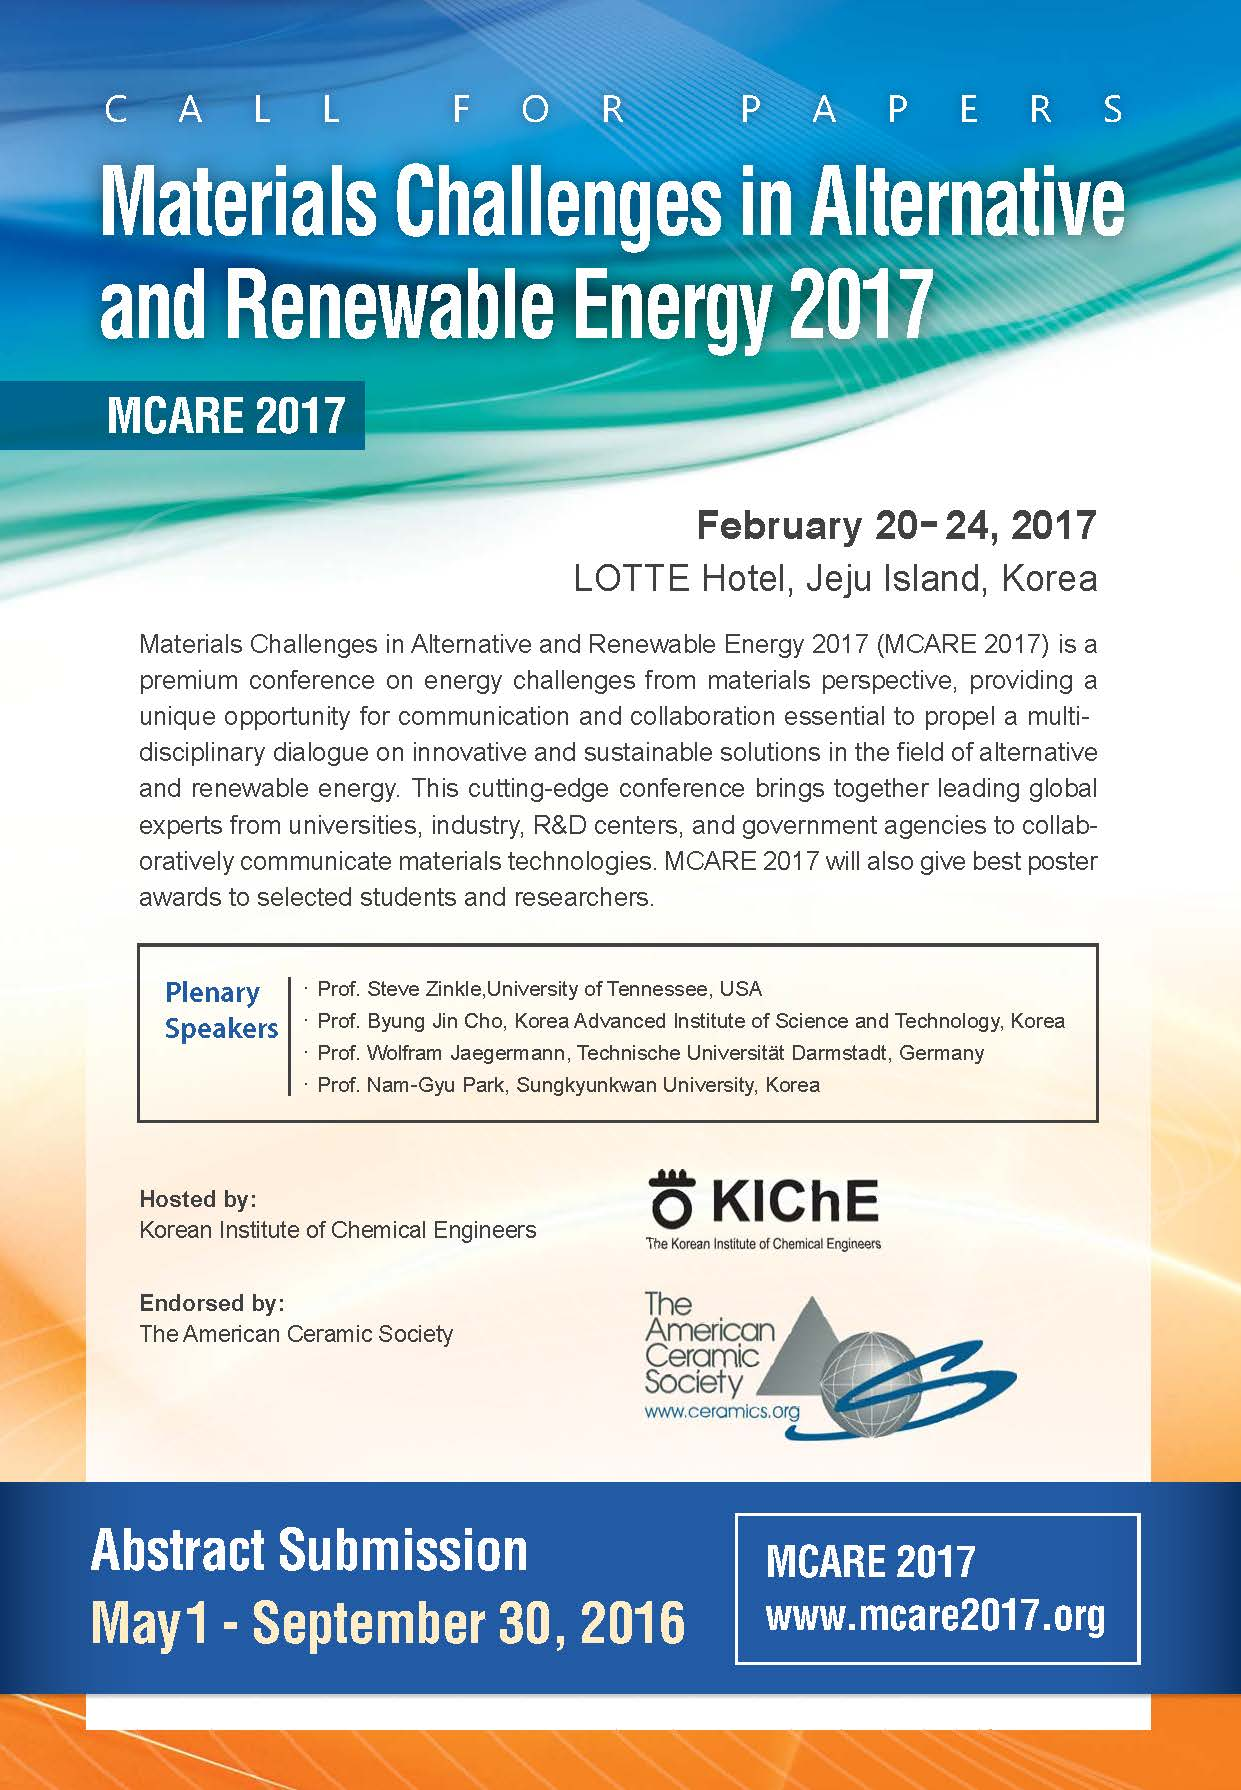 2017 Materials Challenges in Alternative & Renewable Energy_페이지_01.jpg